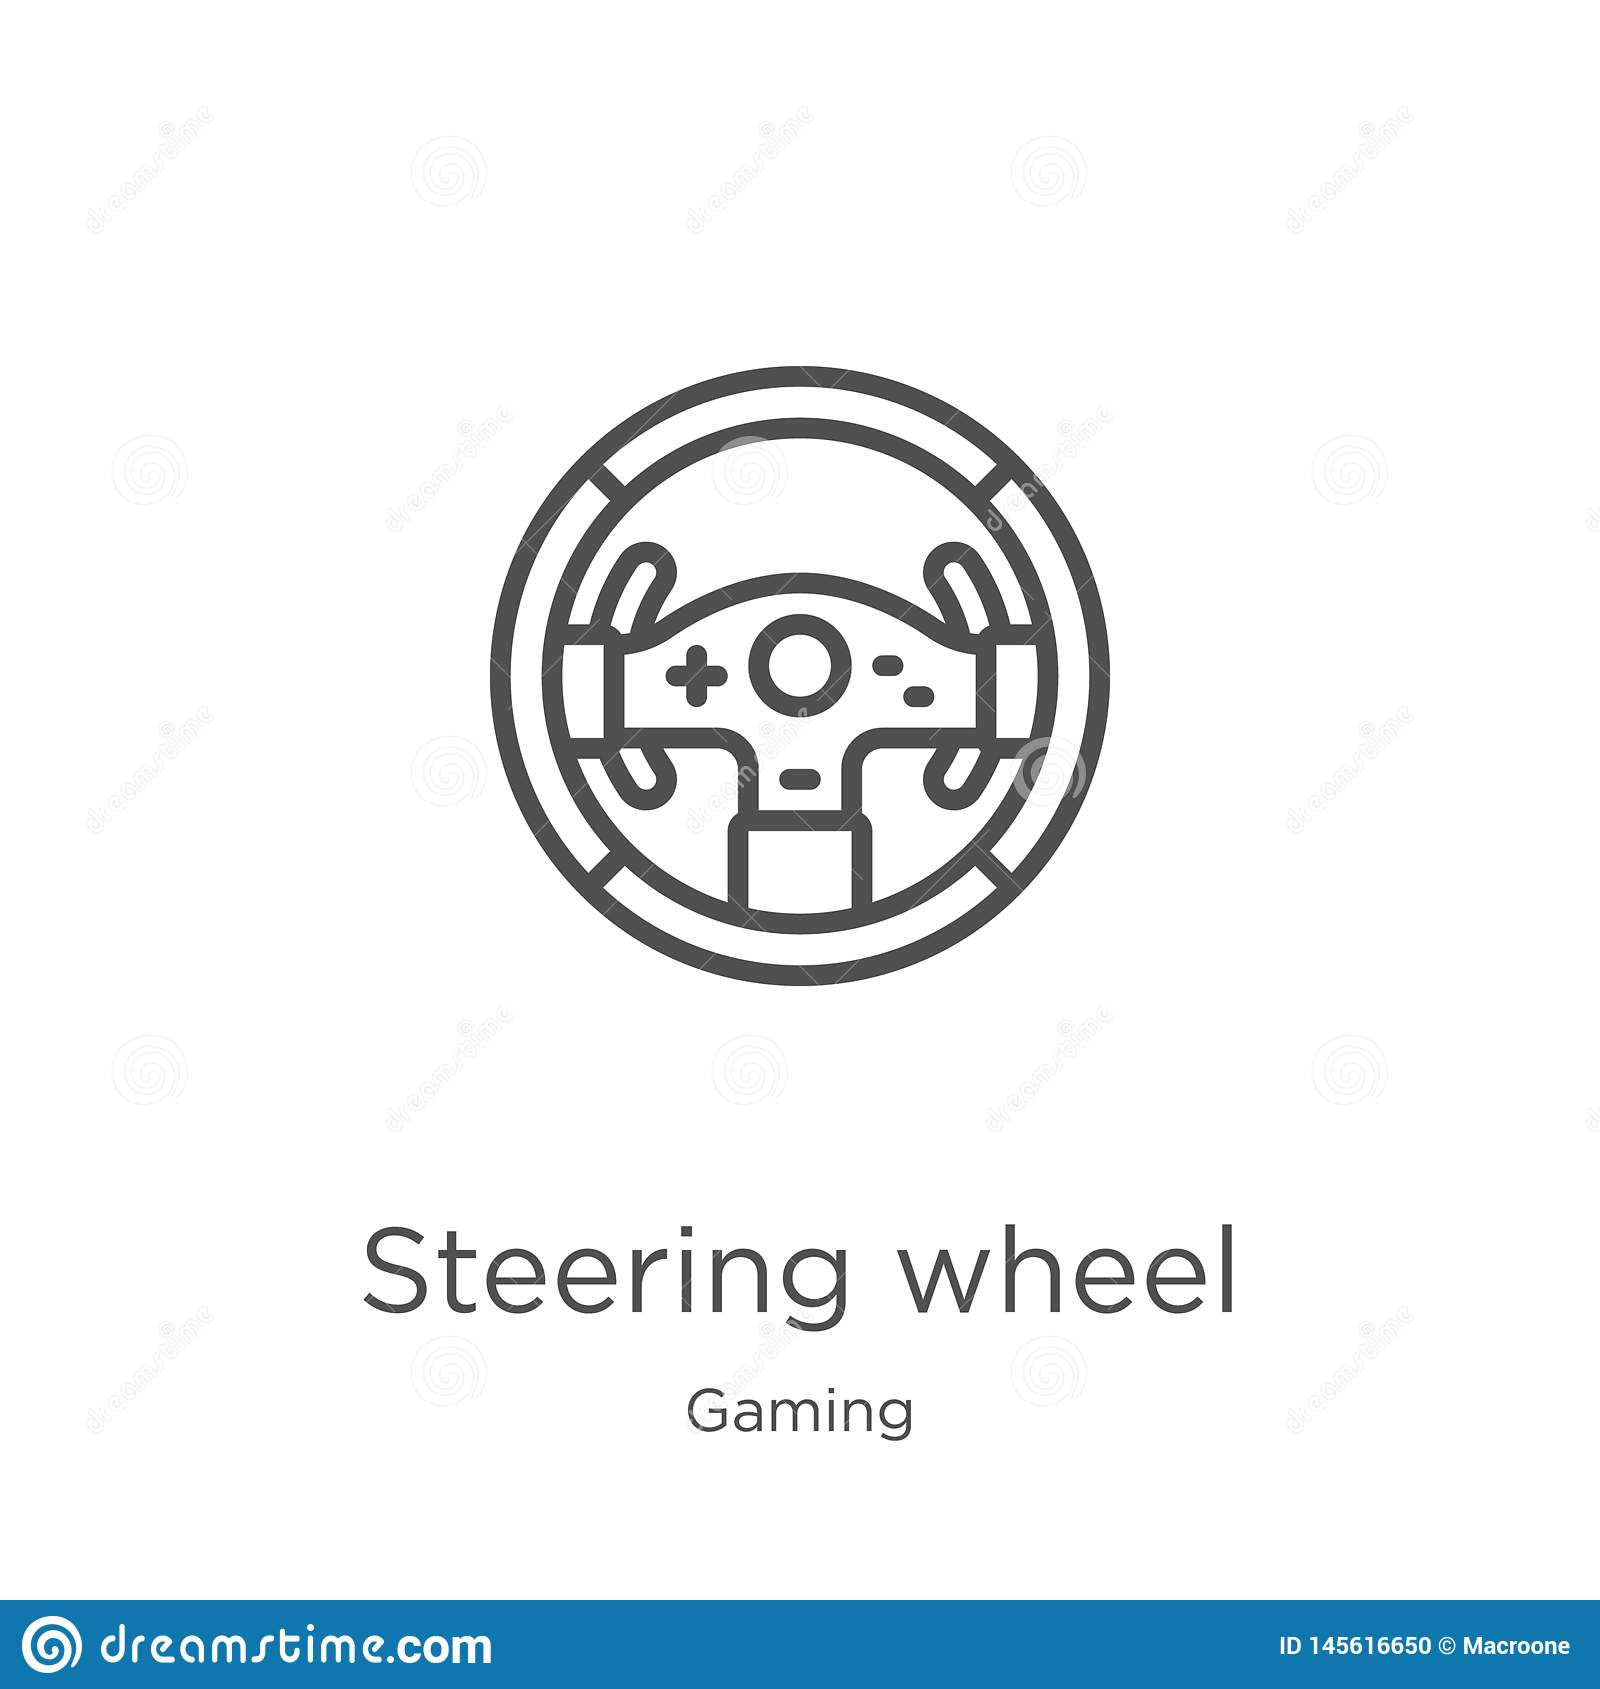 steering wheel icon vector from gaming collection. Thin line steering wheel outline icon vector illustration. Outline, thin line